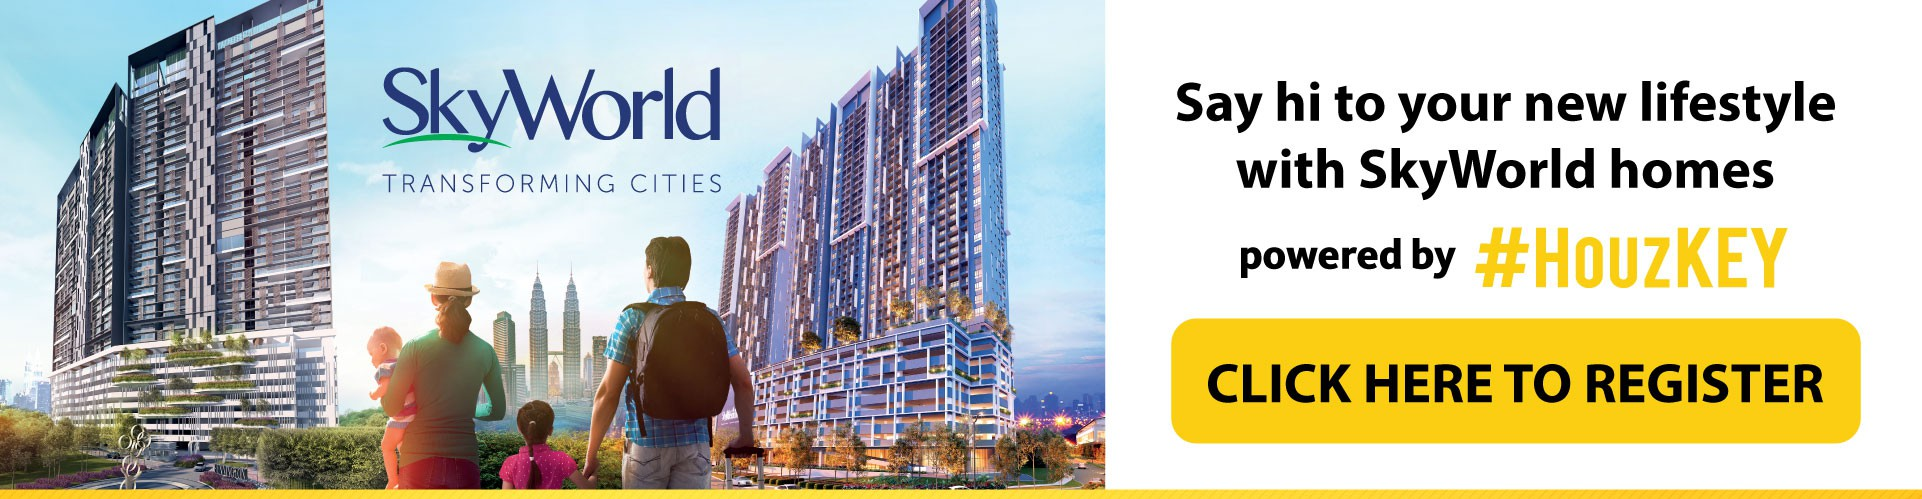 SkyWorld homes - Register Here